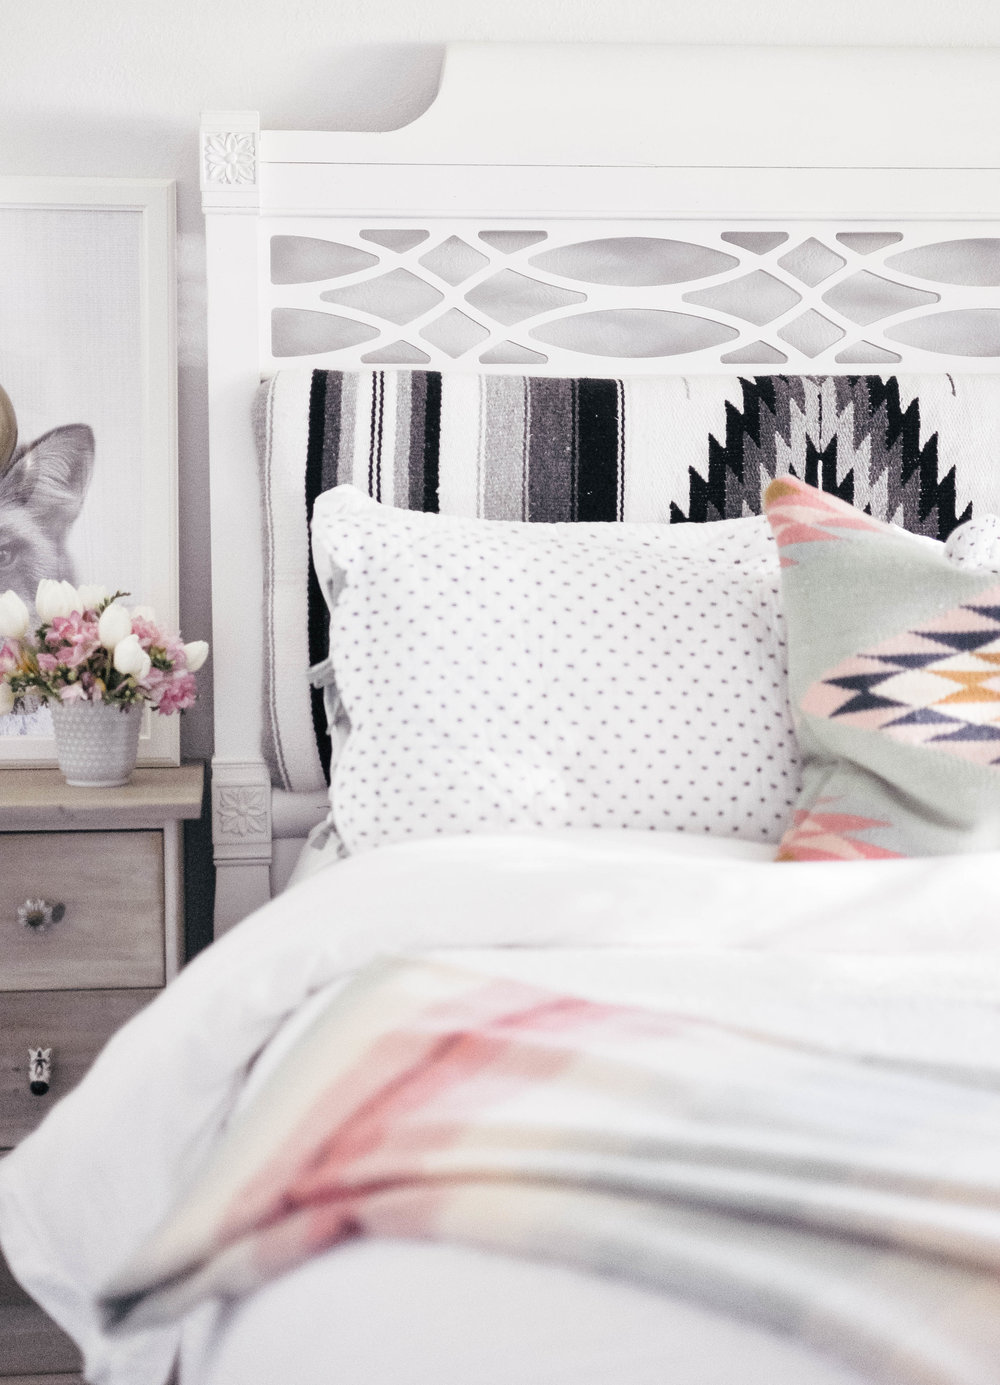 DIY Upholstered Headboard Project